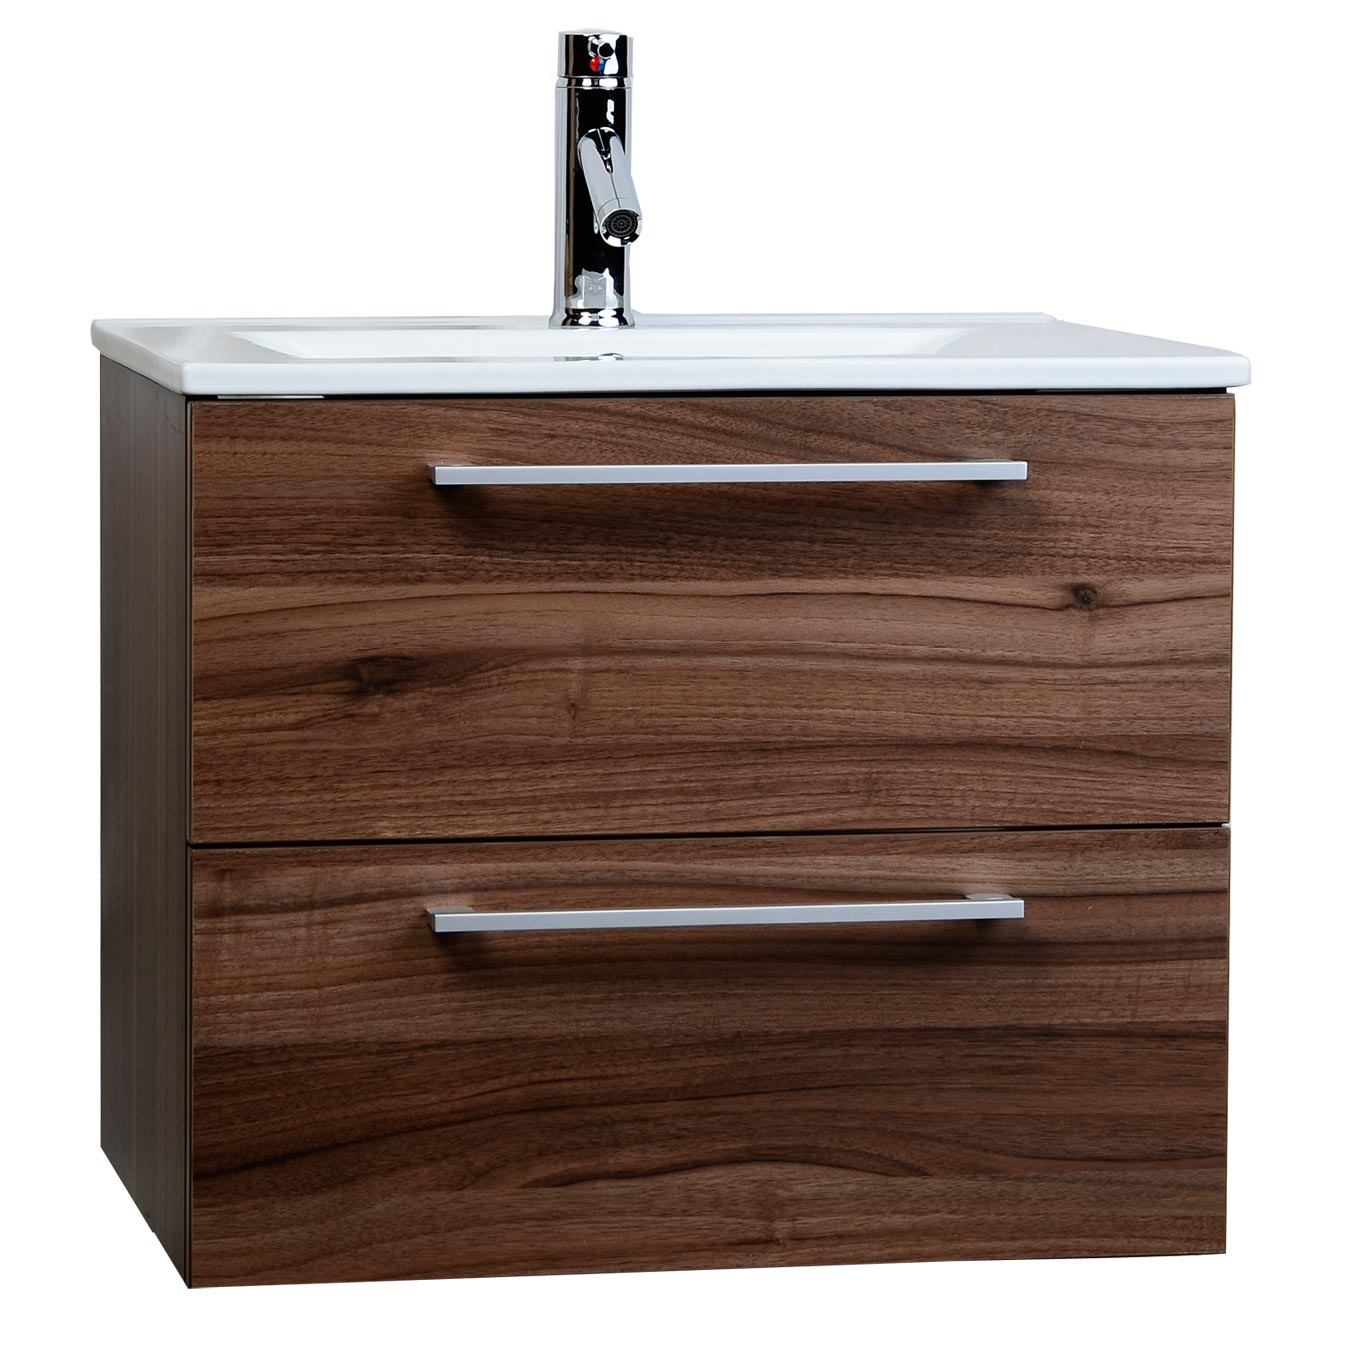 buy small bathroom vanities less than 24 inch on conceptbaths